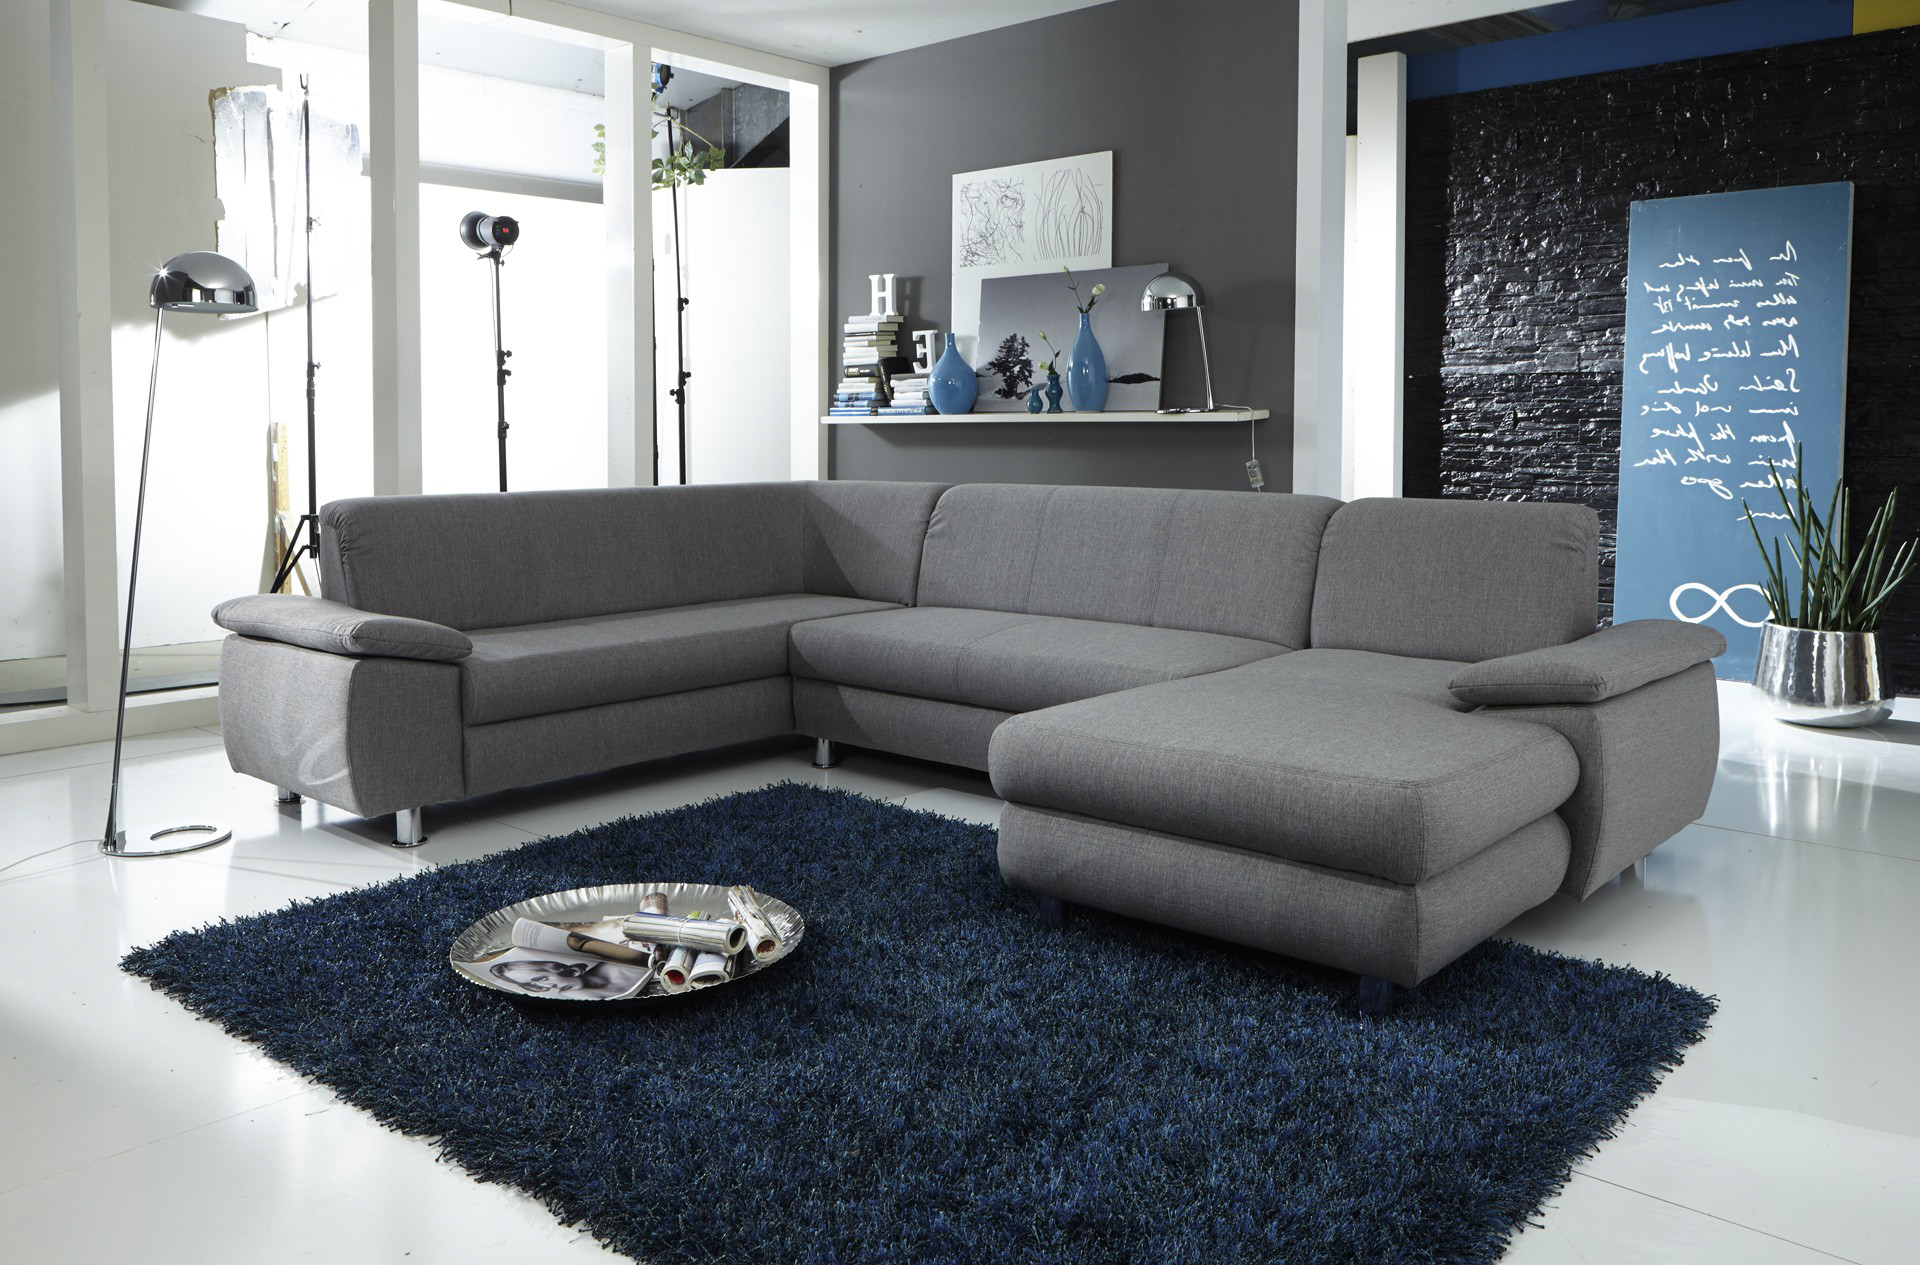 wohnlandschaft u form mexico wohnlandschaften sofas couches wohnzimmer m. Black Bedroom Furniture Sets. Home Design Ideas